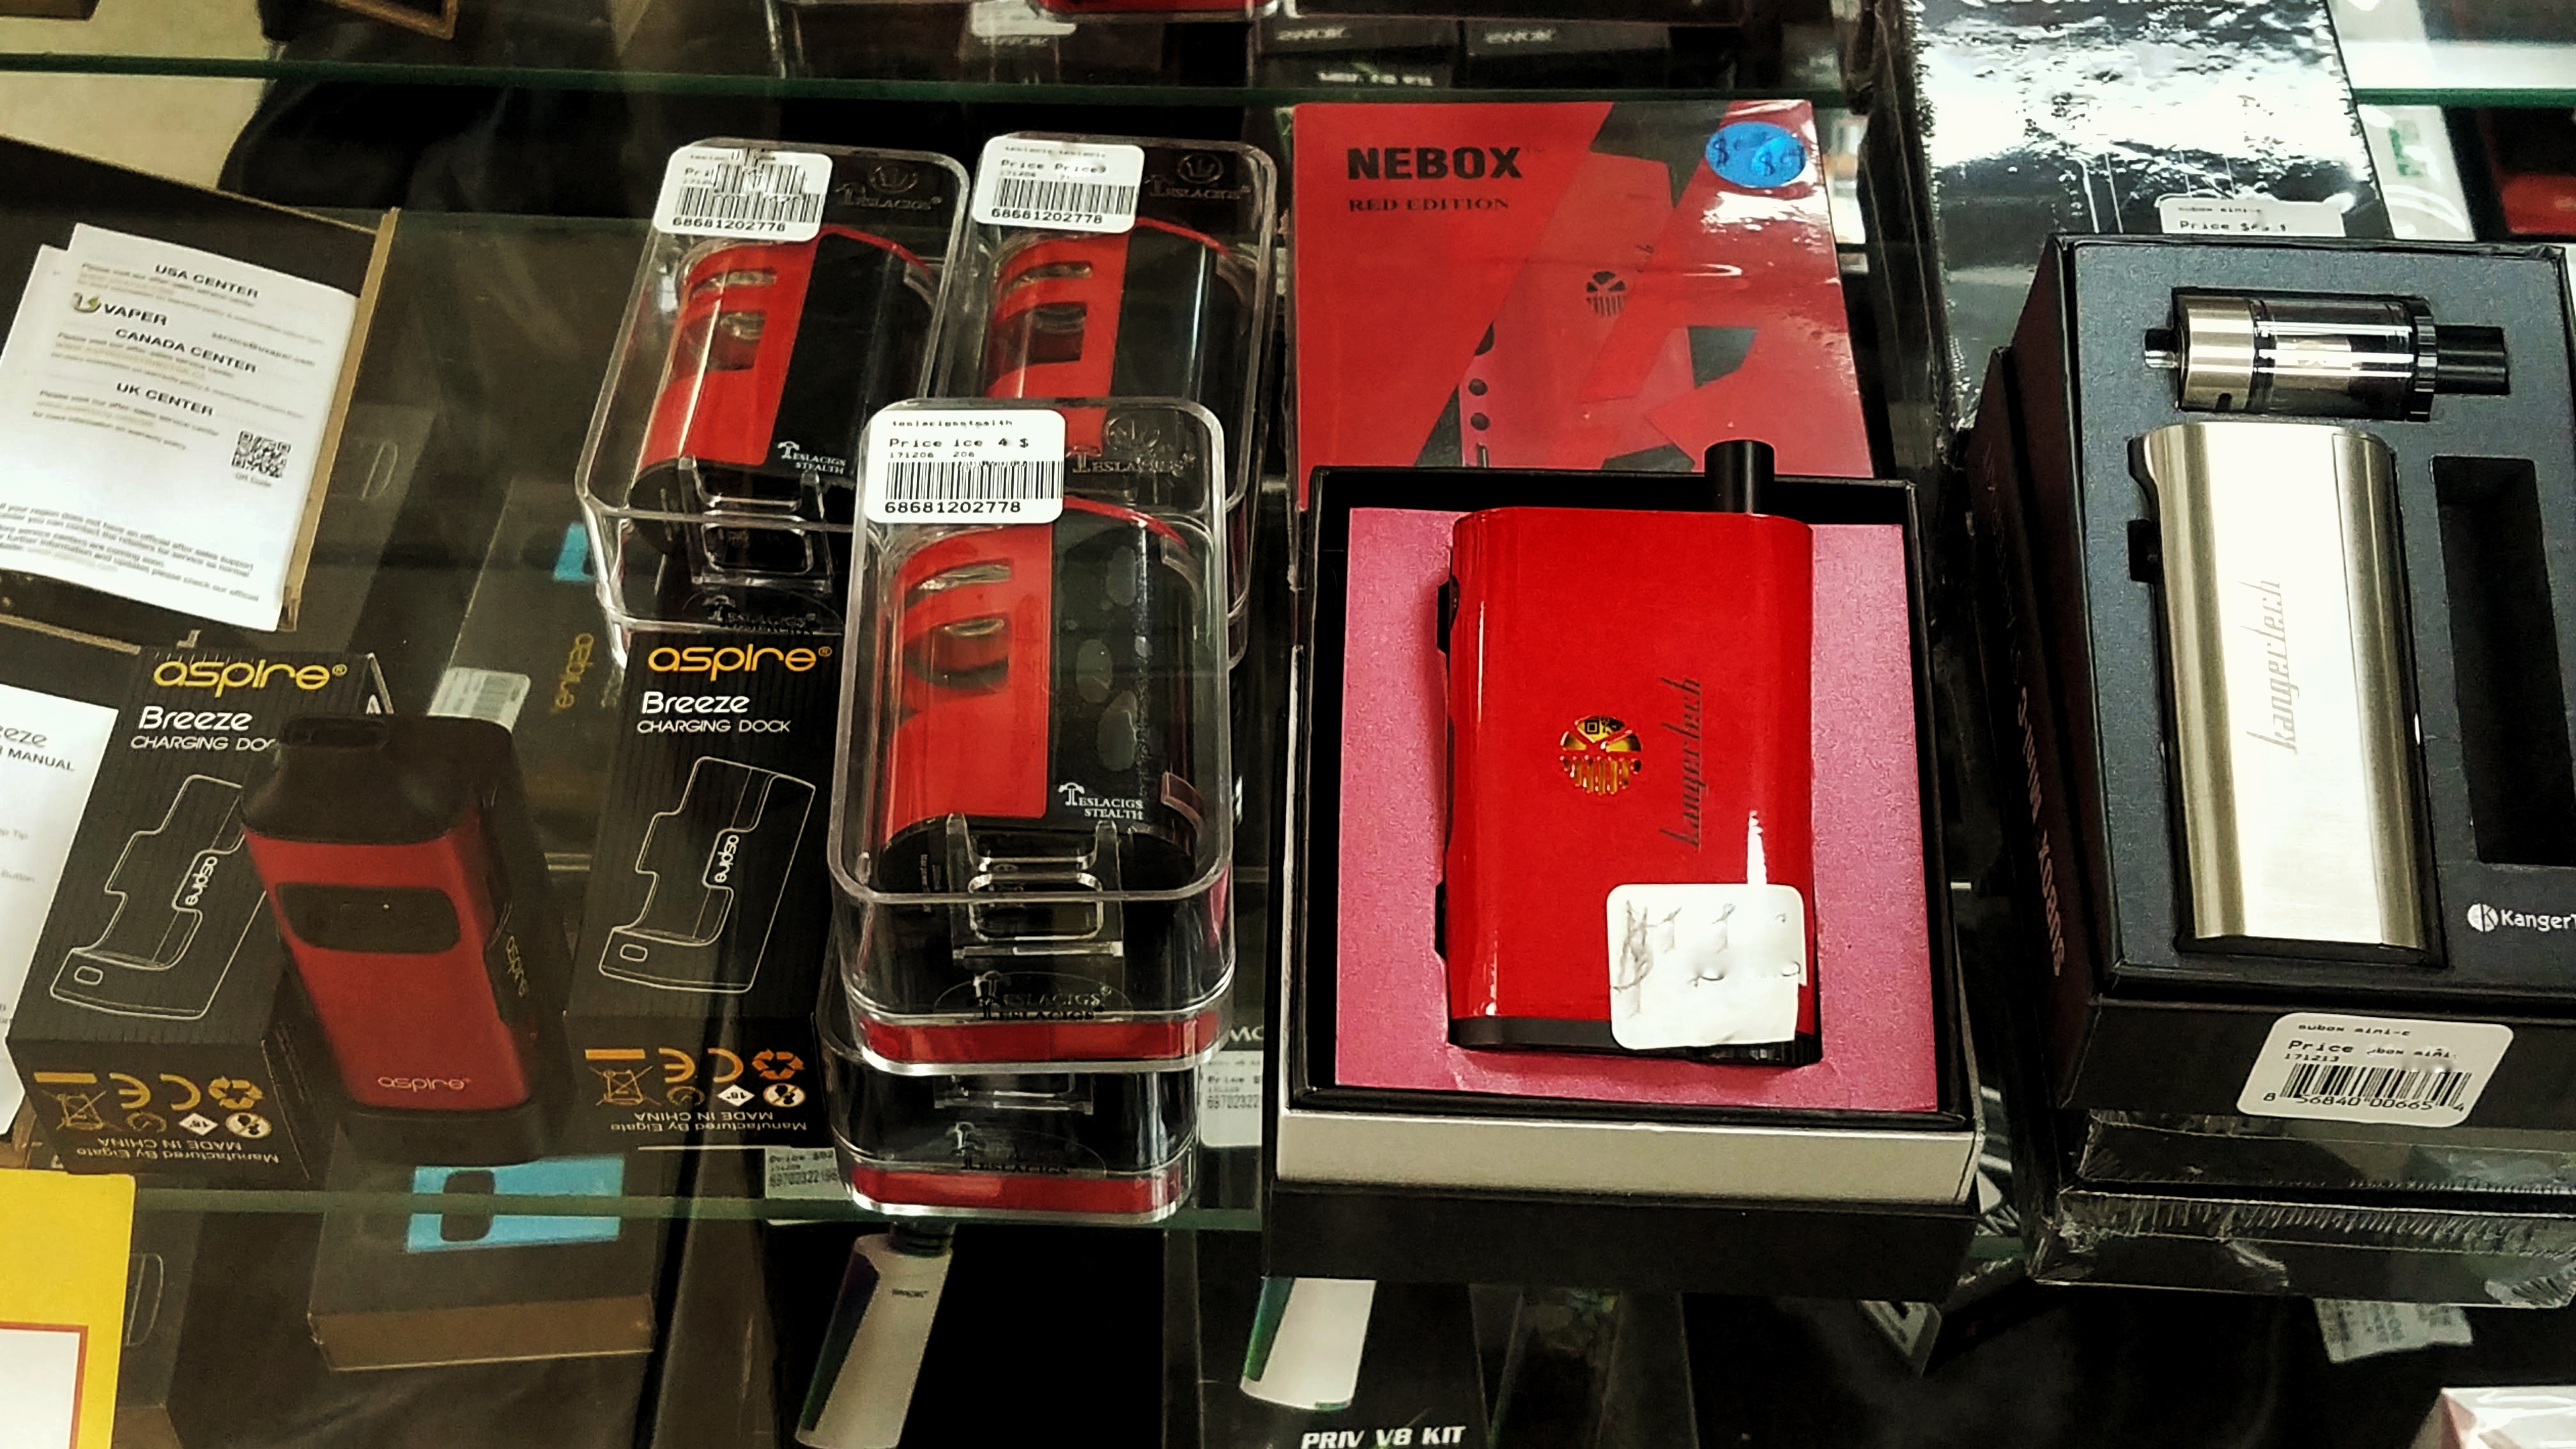 Aspire Vaporizers in Store and More....